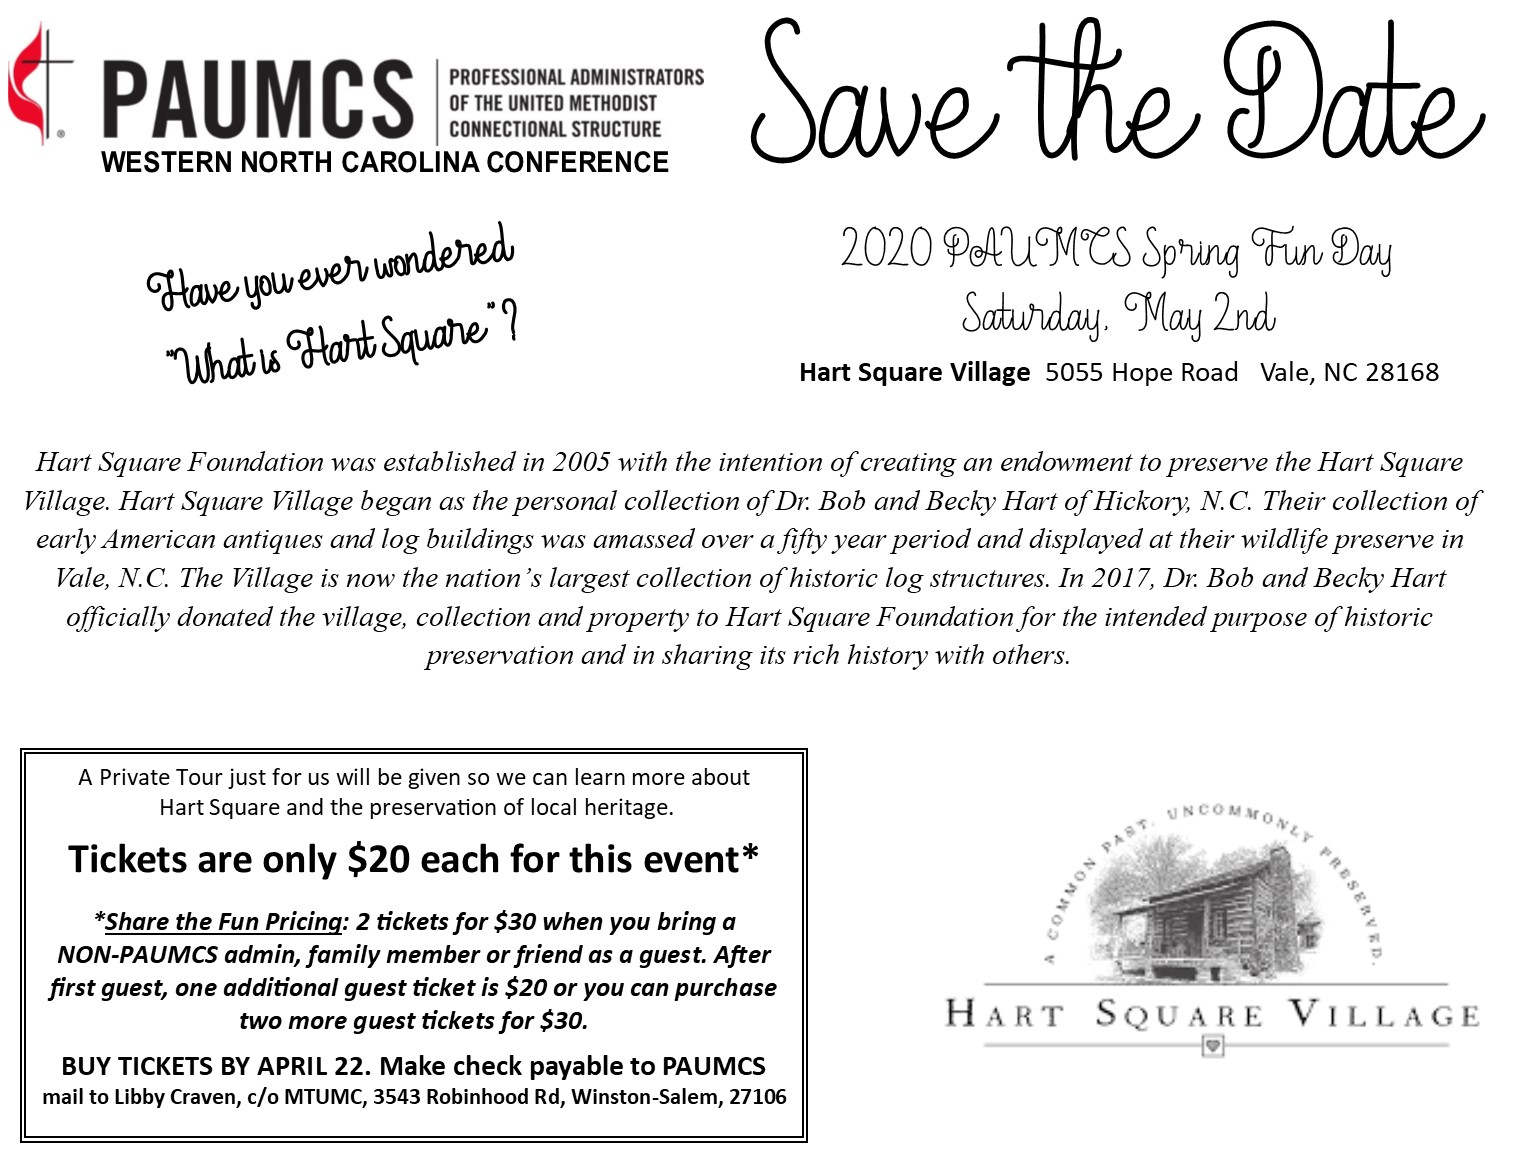 Save the date, 2020 PAUMCS Spring Fun Day Saturday, May 2nd.